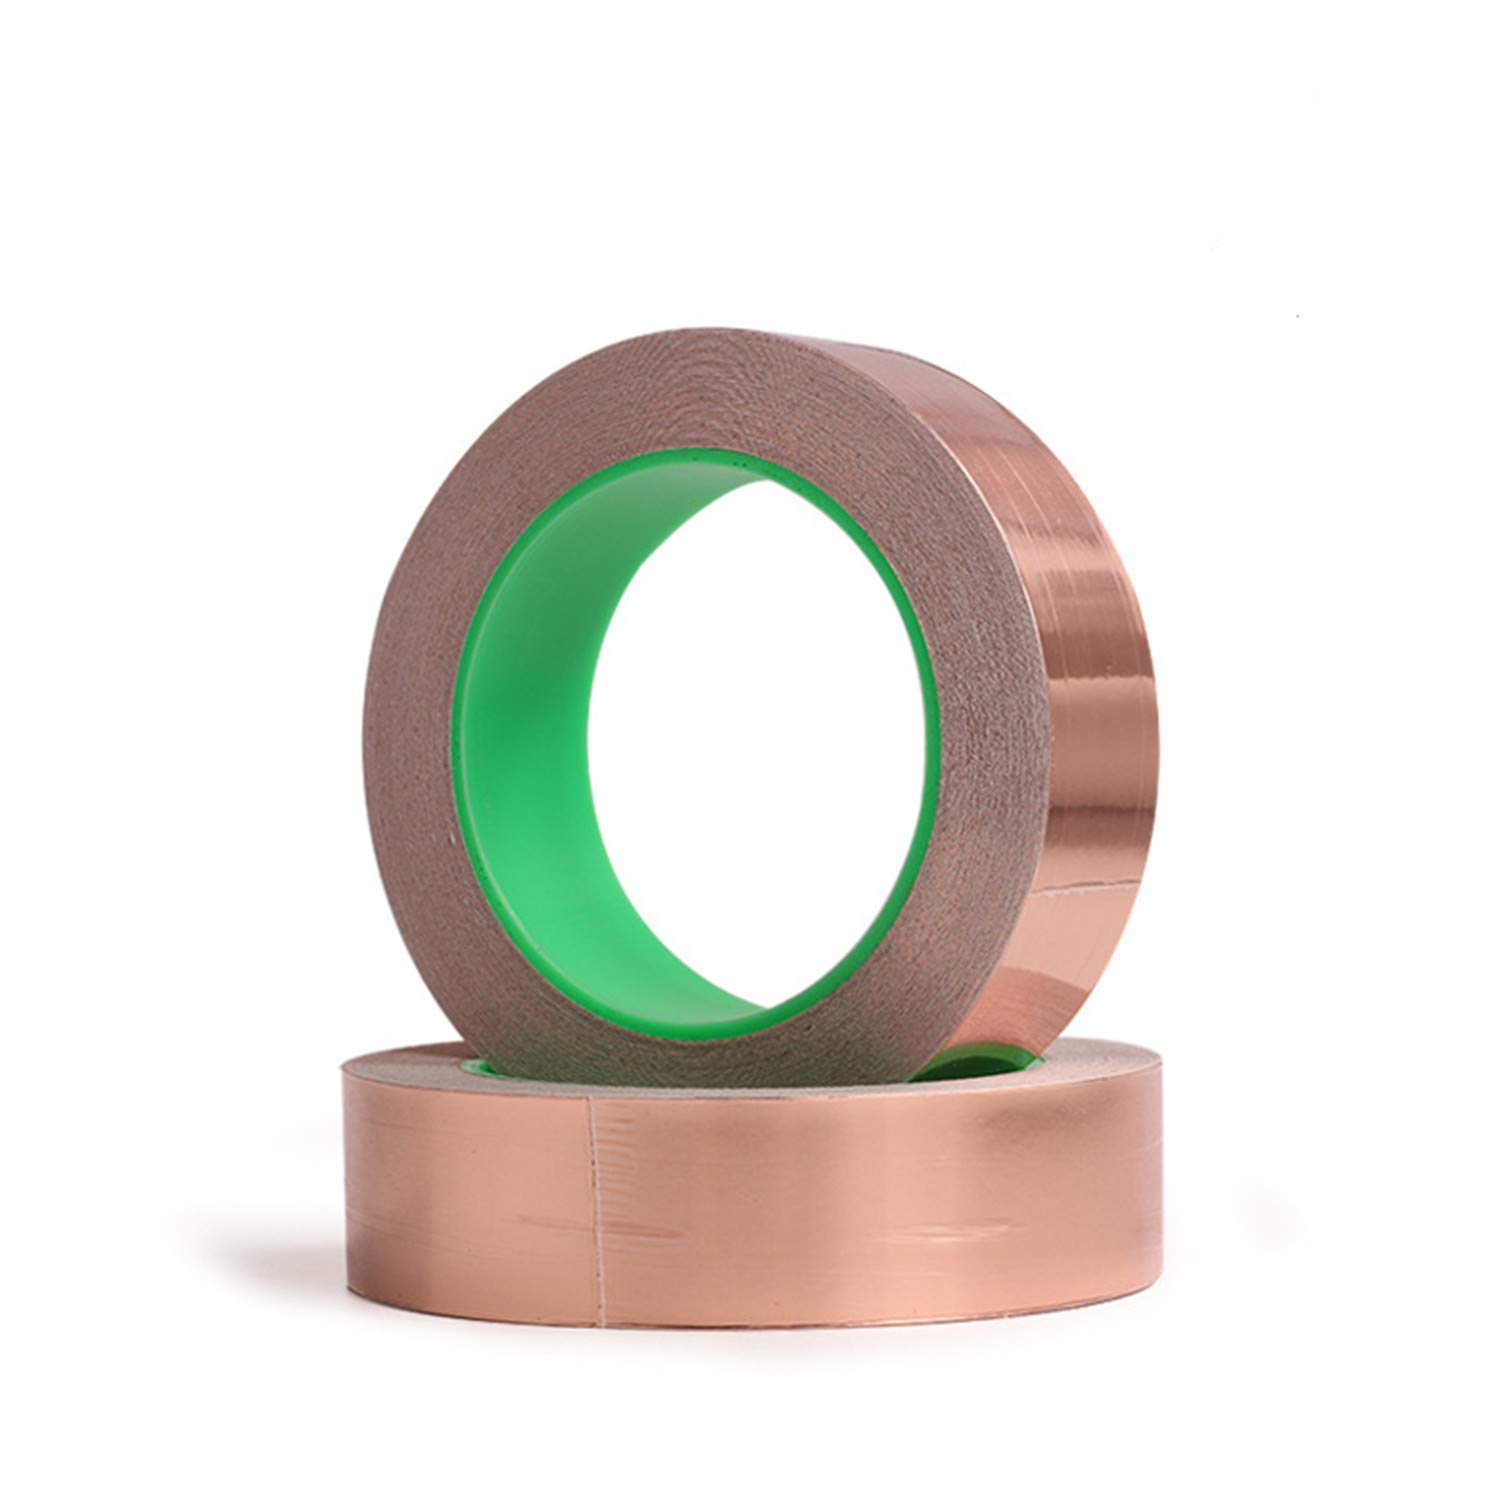 Copper Foil Tape with Double Sided Conductive Adhesive 2 Rolls 8 Sizes - Electrical Repairs, Slug Repellent, EMI Shielding, Stained Glass, Crafts, Grounding (2-Roll,25mm x 27.5yard)